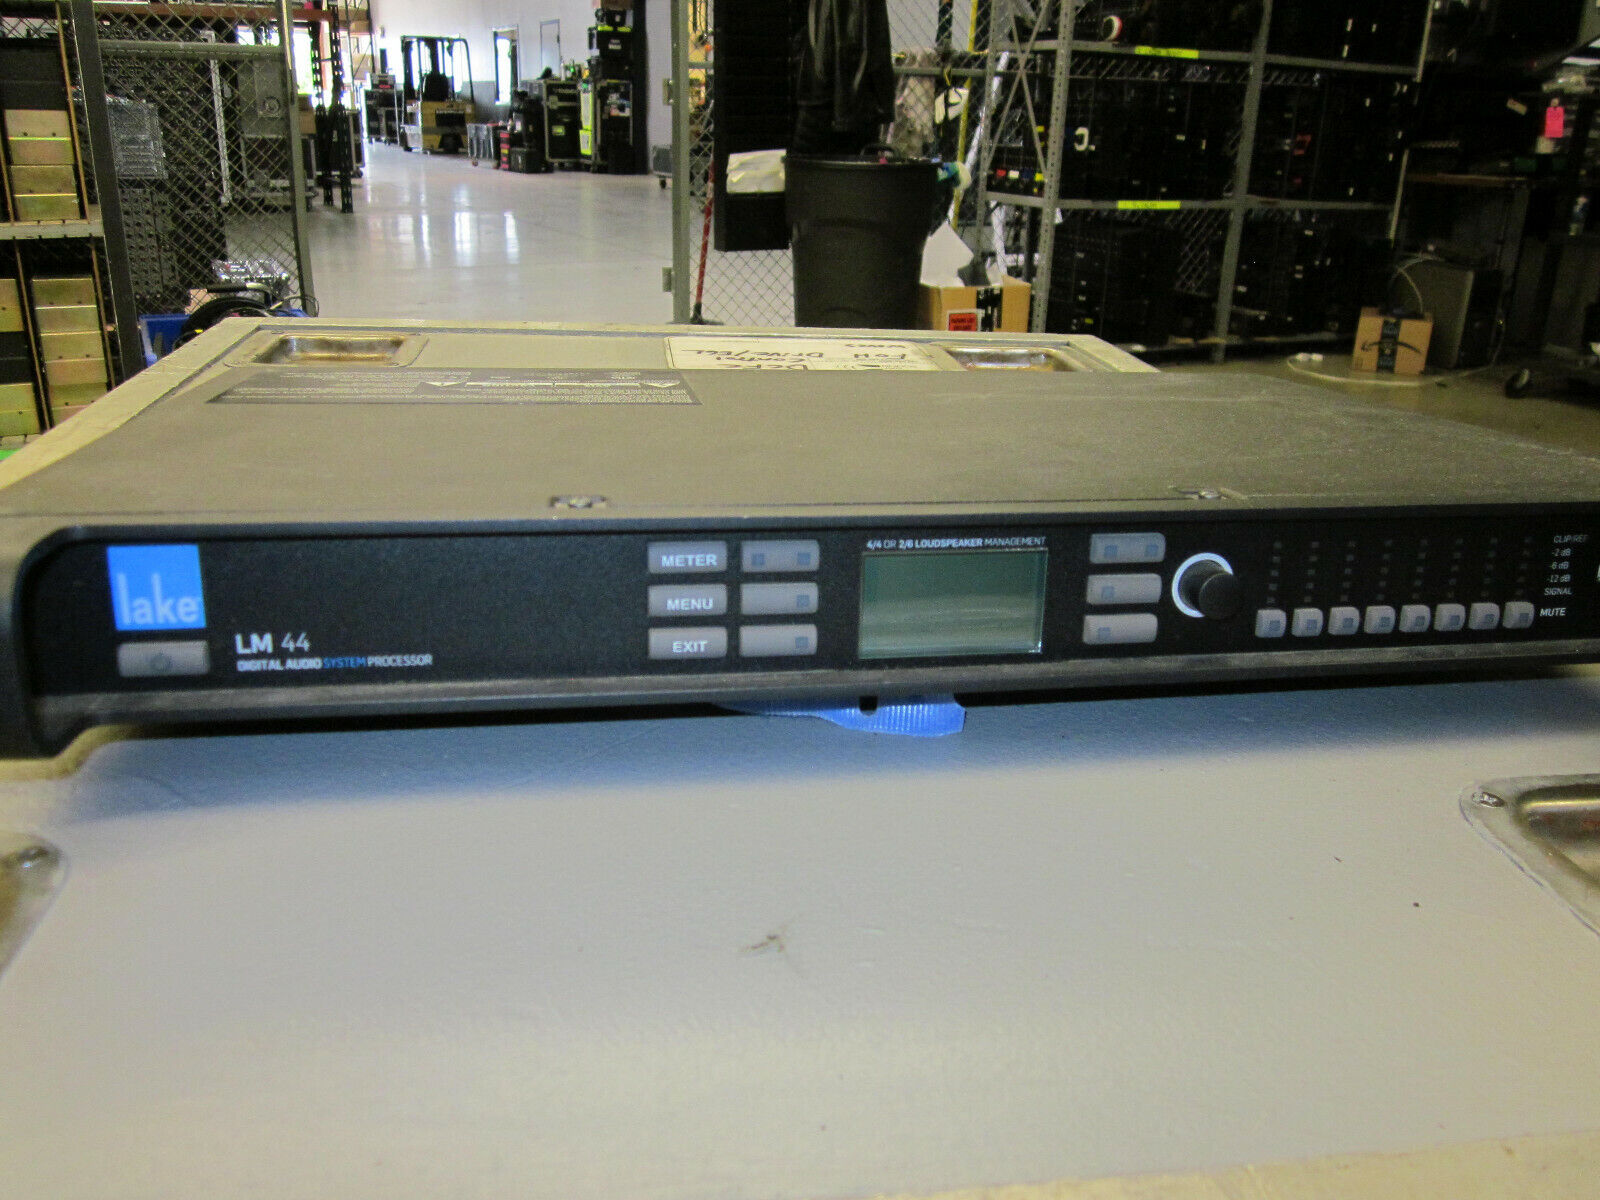 Lake LM 44 Digital Processor. Buy it now for 2200.00